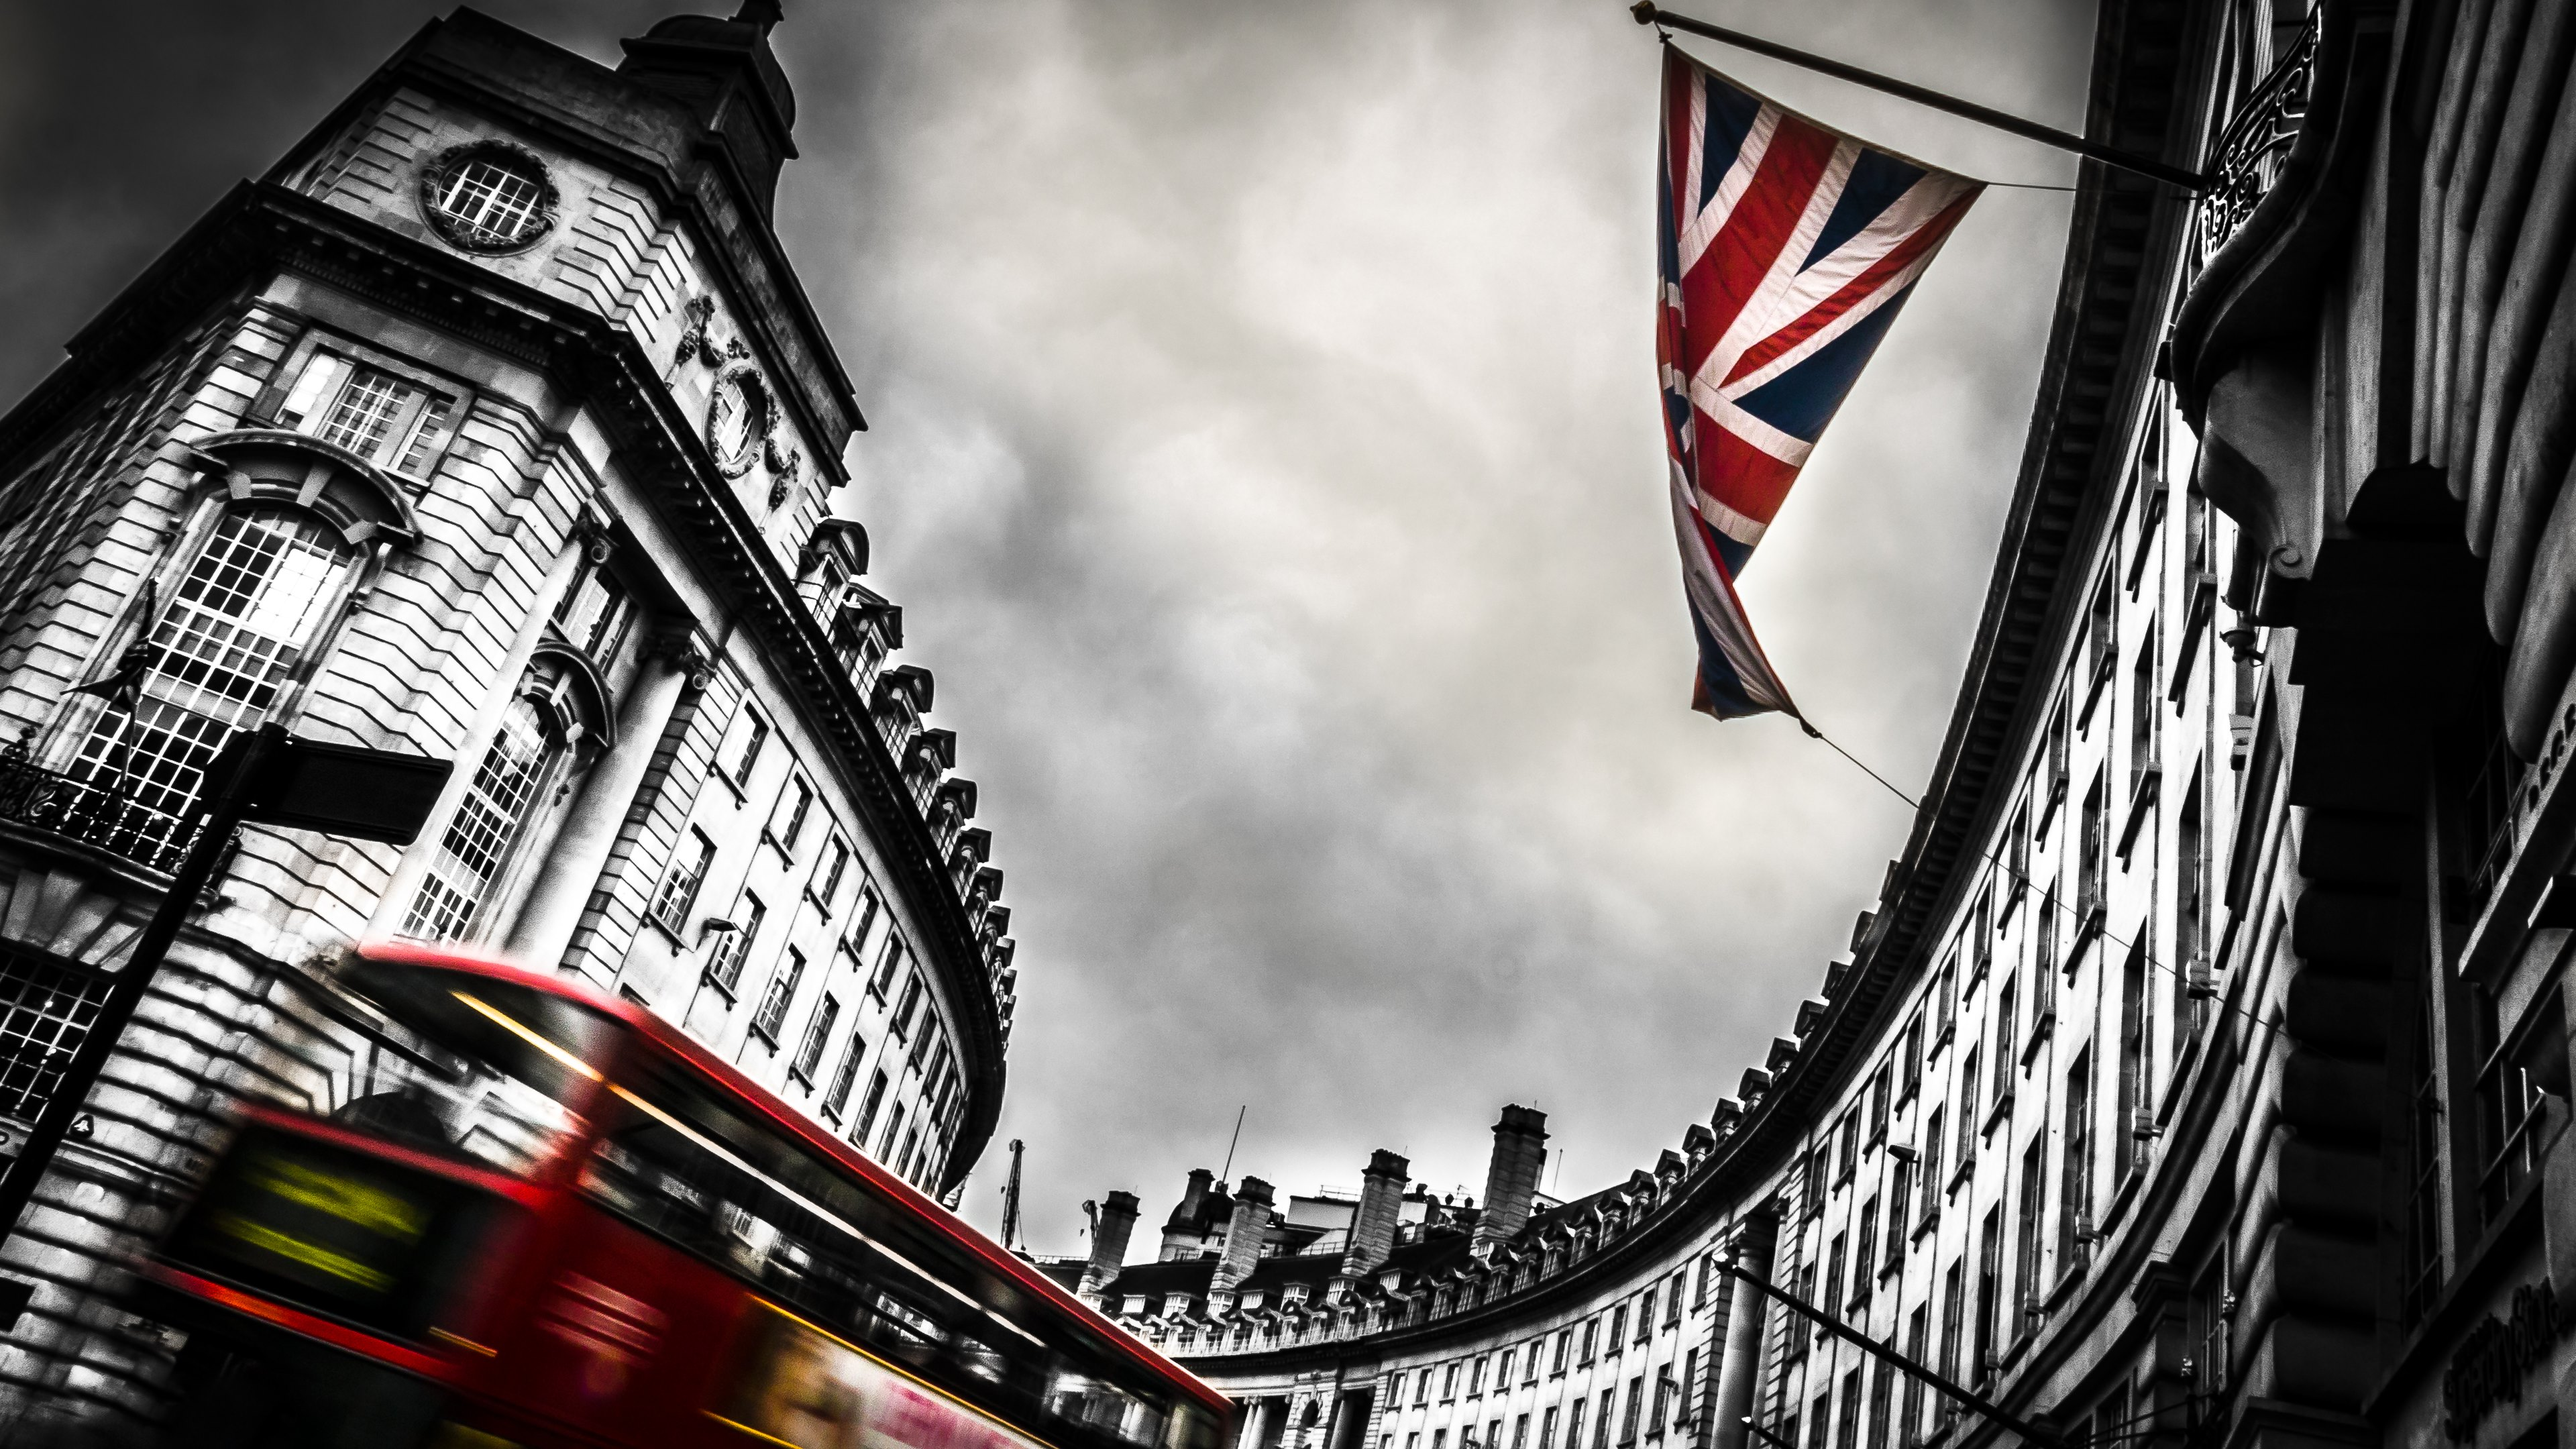 london bus and england flag wallpapers in hd 4k and wide